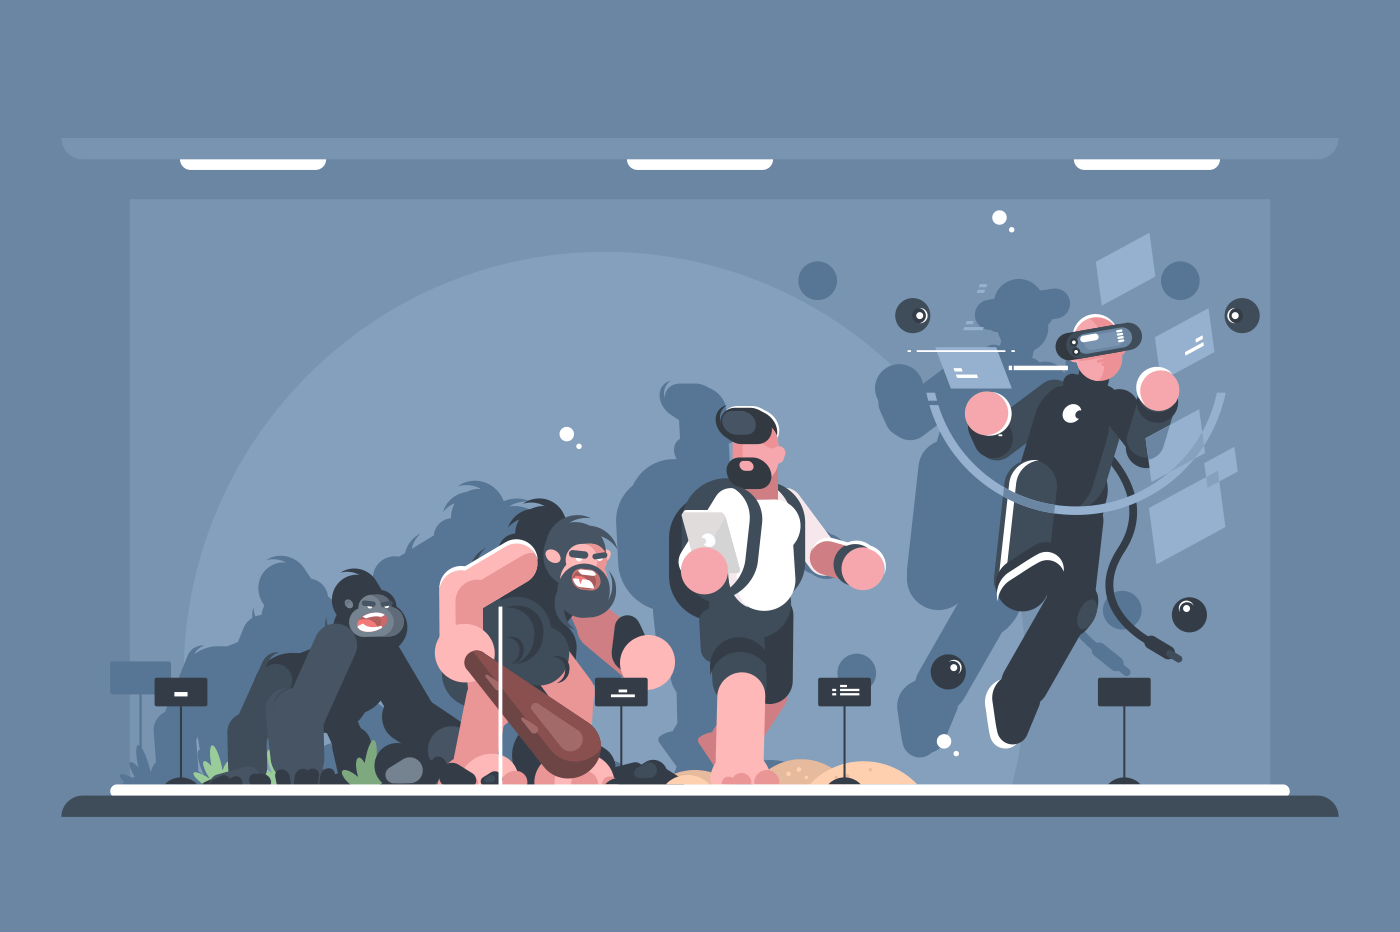 Evolution of man. Monkey and homo sapiens, person with smartphone, and in virtual reality. Vector illustration